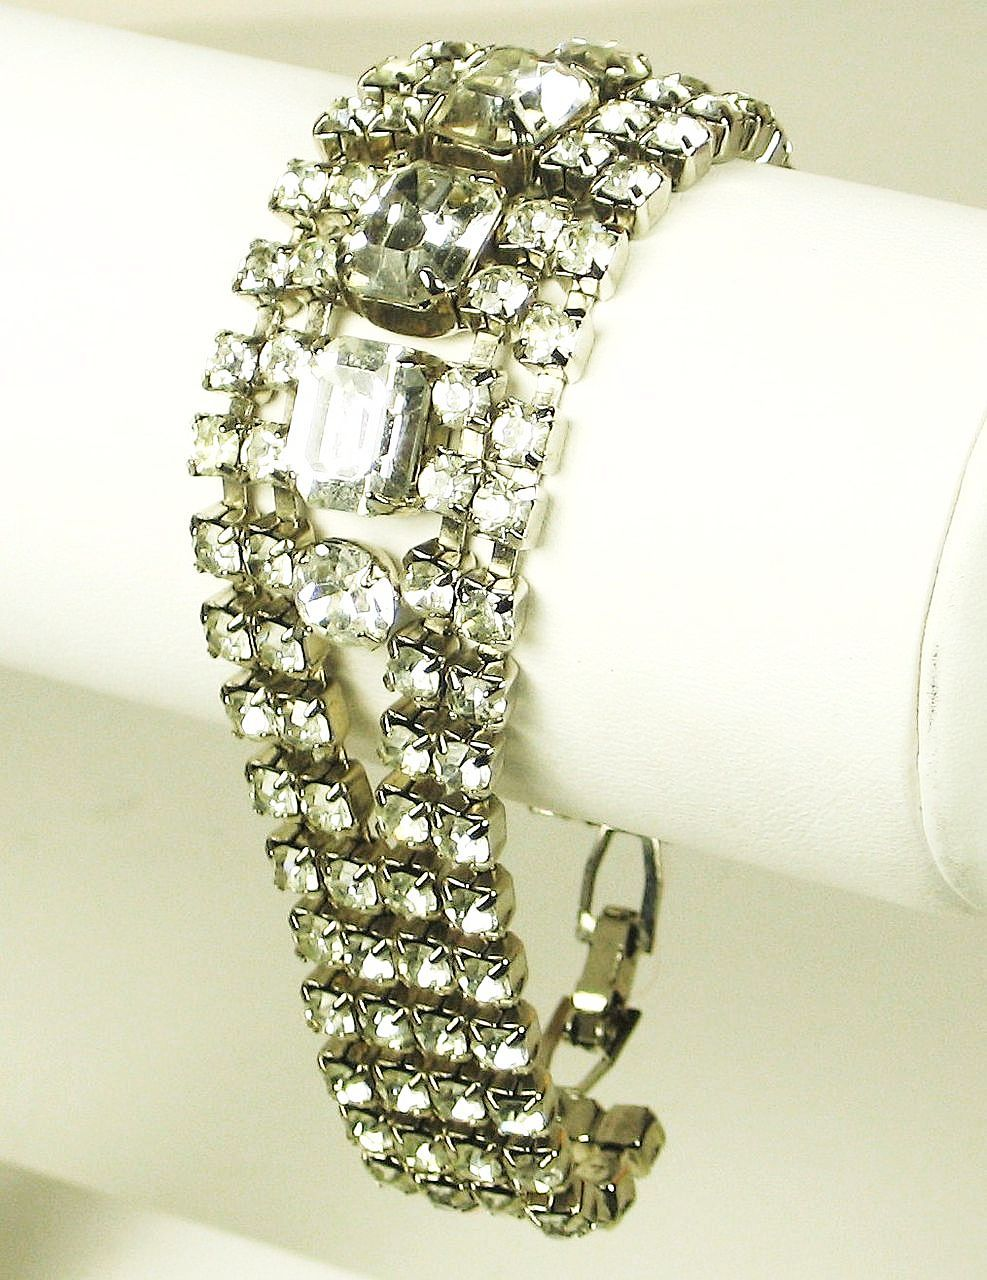 Vintage Rhodium Plated Metal and Rhinestone Bracelet